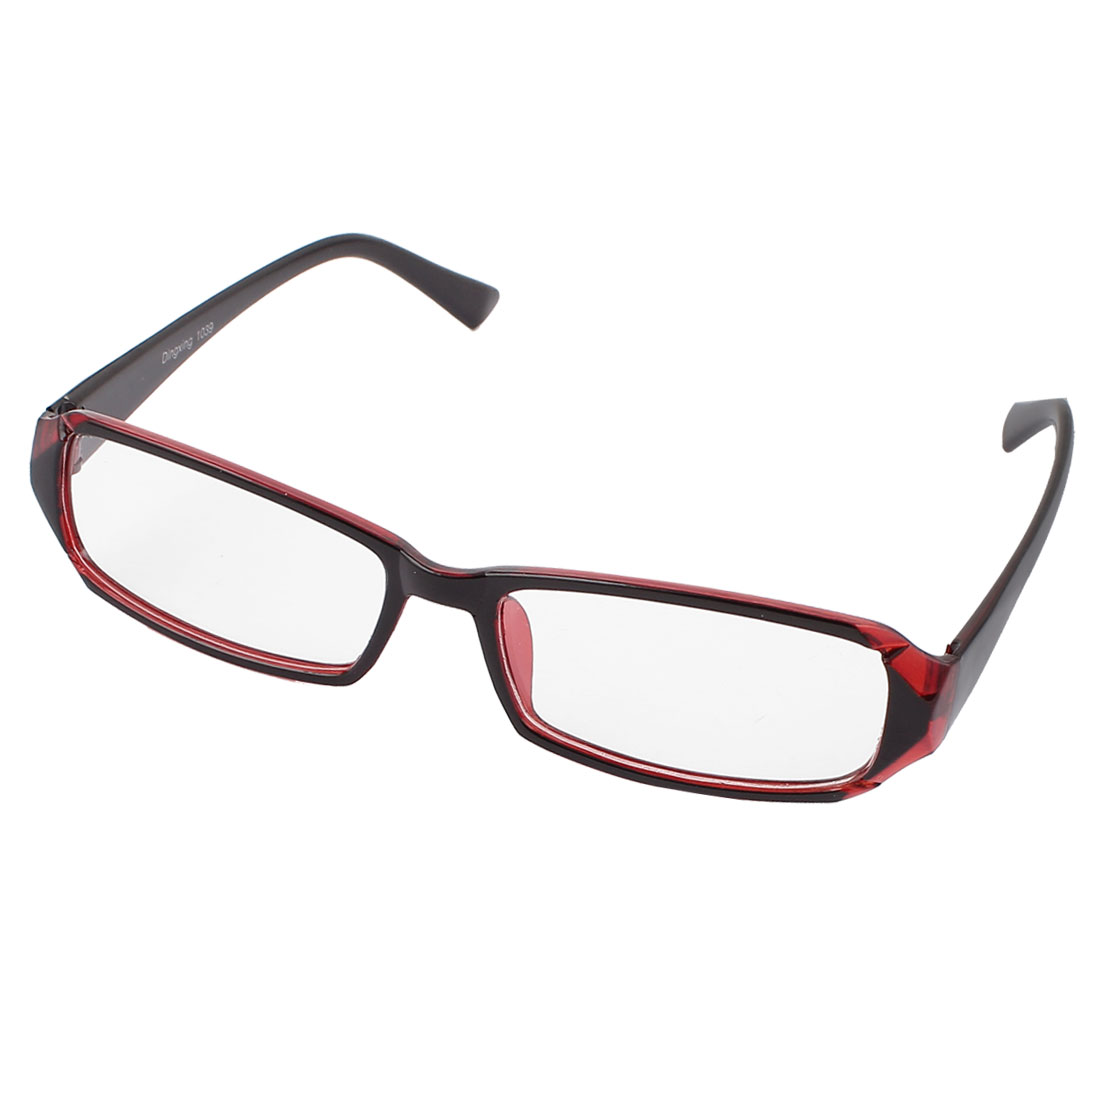 Plastic Plain Glass Spectacles Orange Red Rectangular Frame